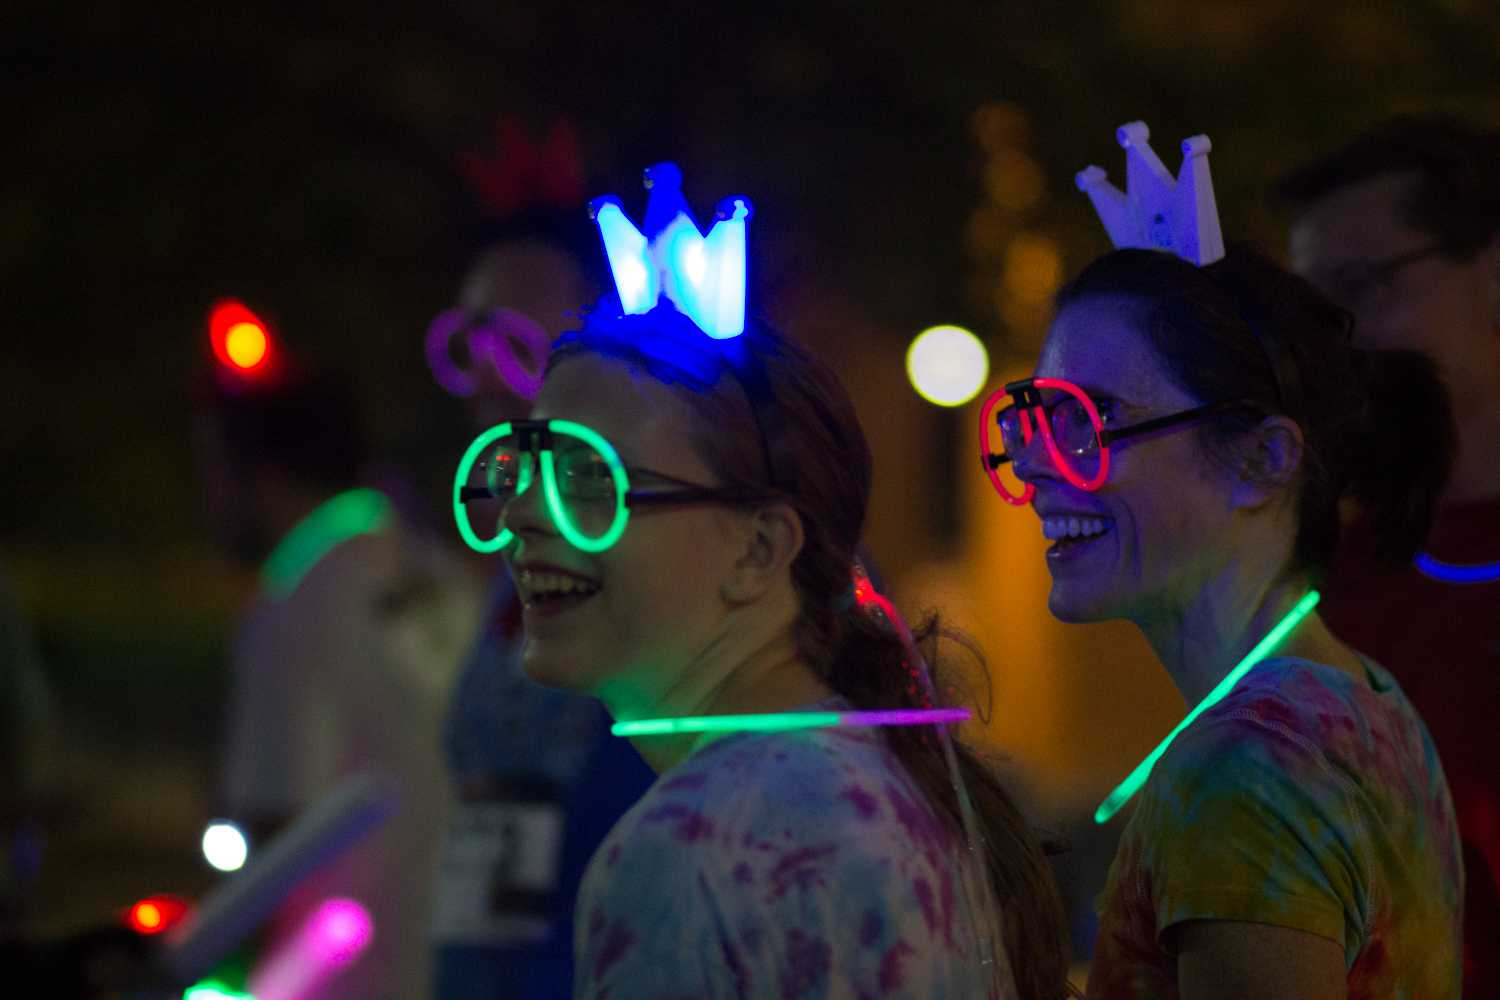 (Left to Right): Nora Vesley and Vanessa Vesley smile and cheer on the other race attendants during the Rainbow Run outside of Kent State's Student Center on Friday, Sept. 21, 2018. The theme for this year's 5k was a glow-up color run. Attendants were given glow-in-the-dark objects to guide them through the campus course. Photo by Sophia Adornetto.